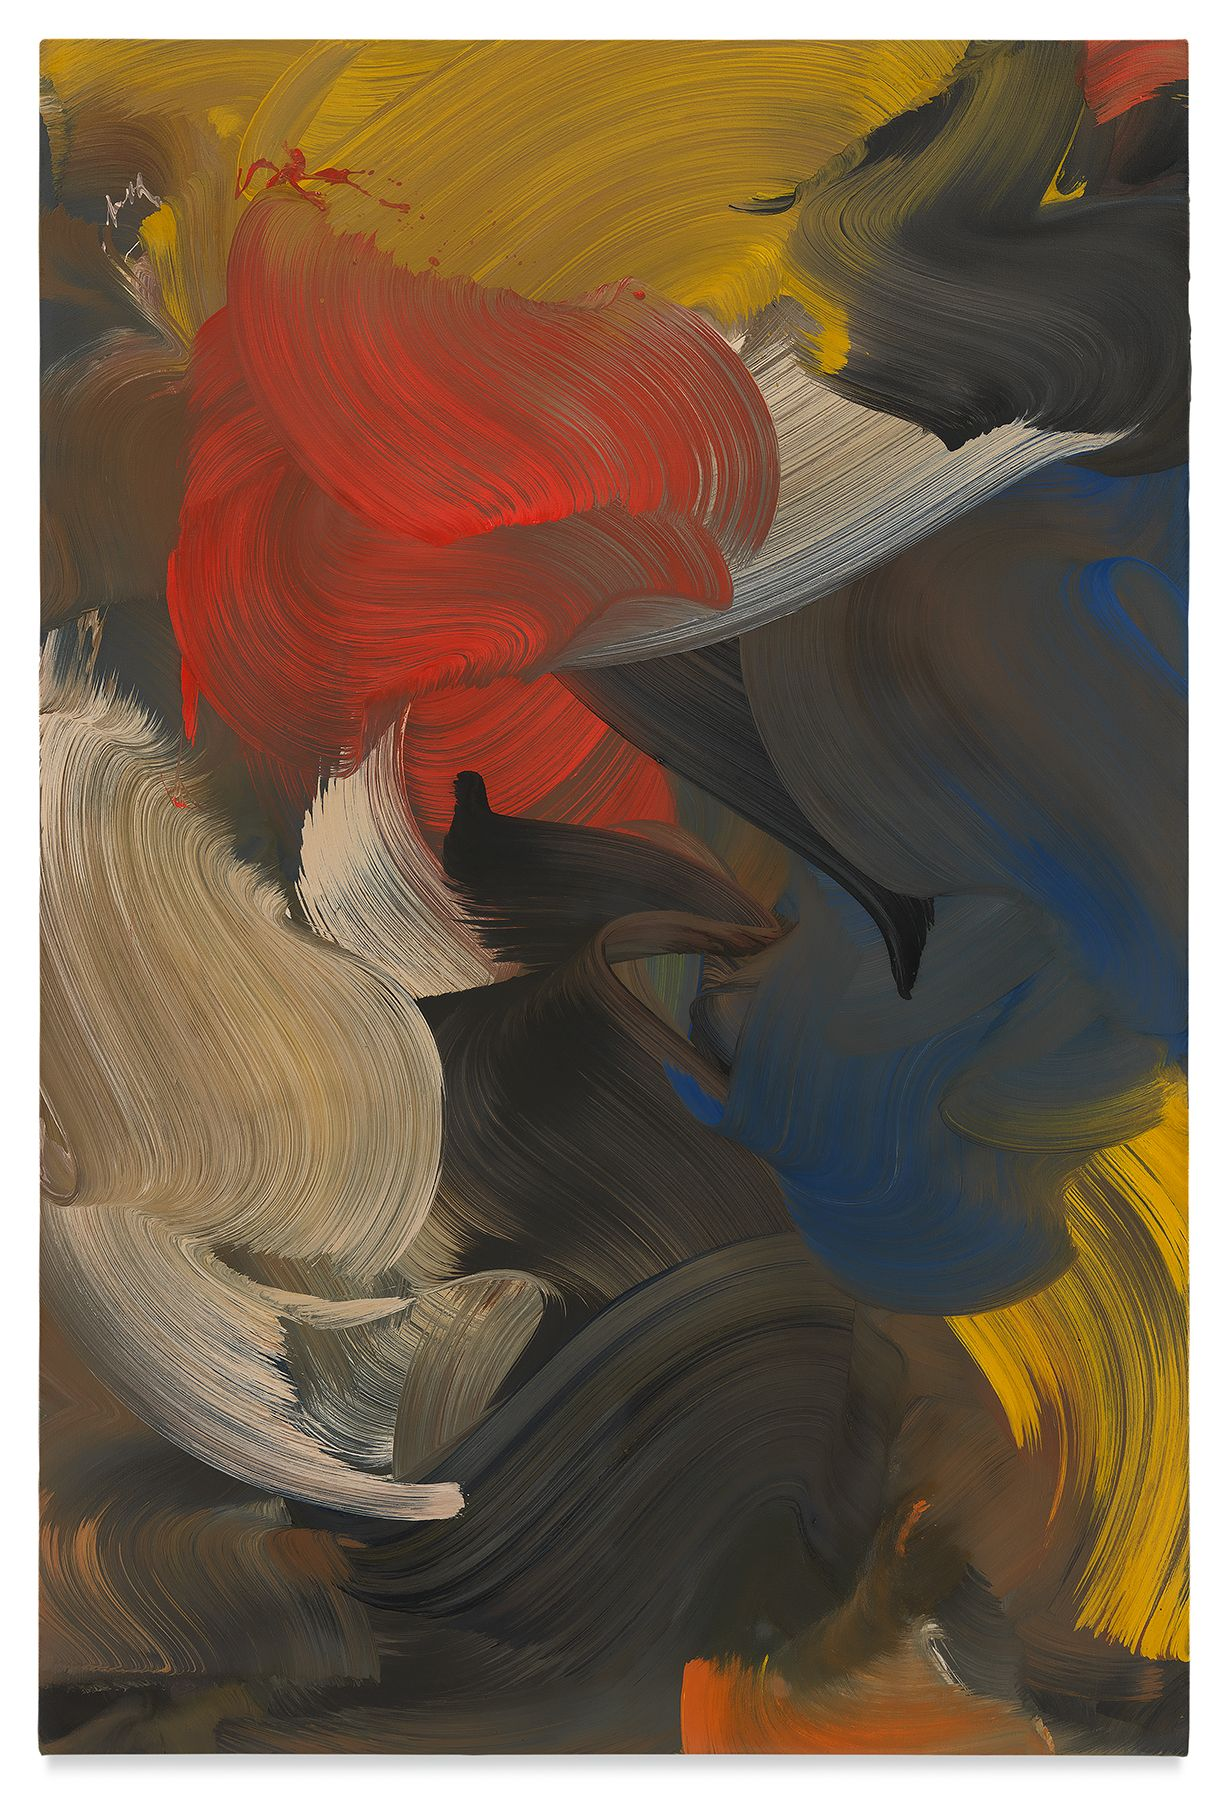 trickster, 2019,Oil on canvas,59 x 39 3/8 inches,150 x 100 cm,MMG#30965